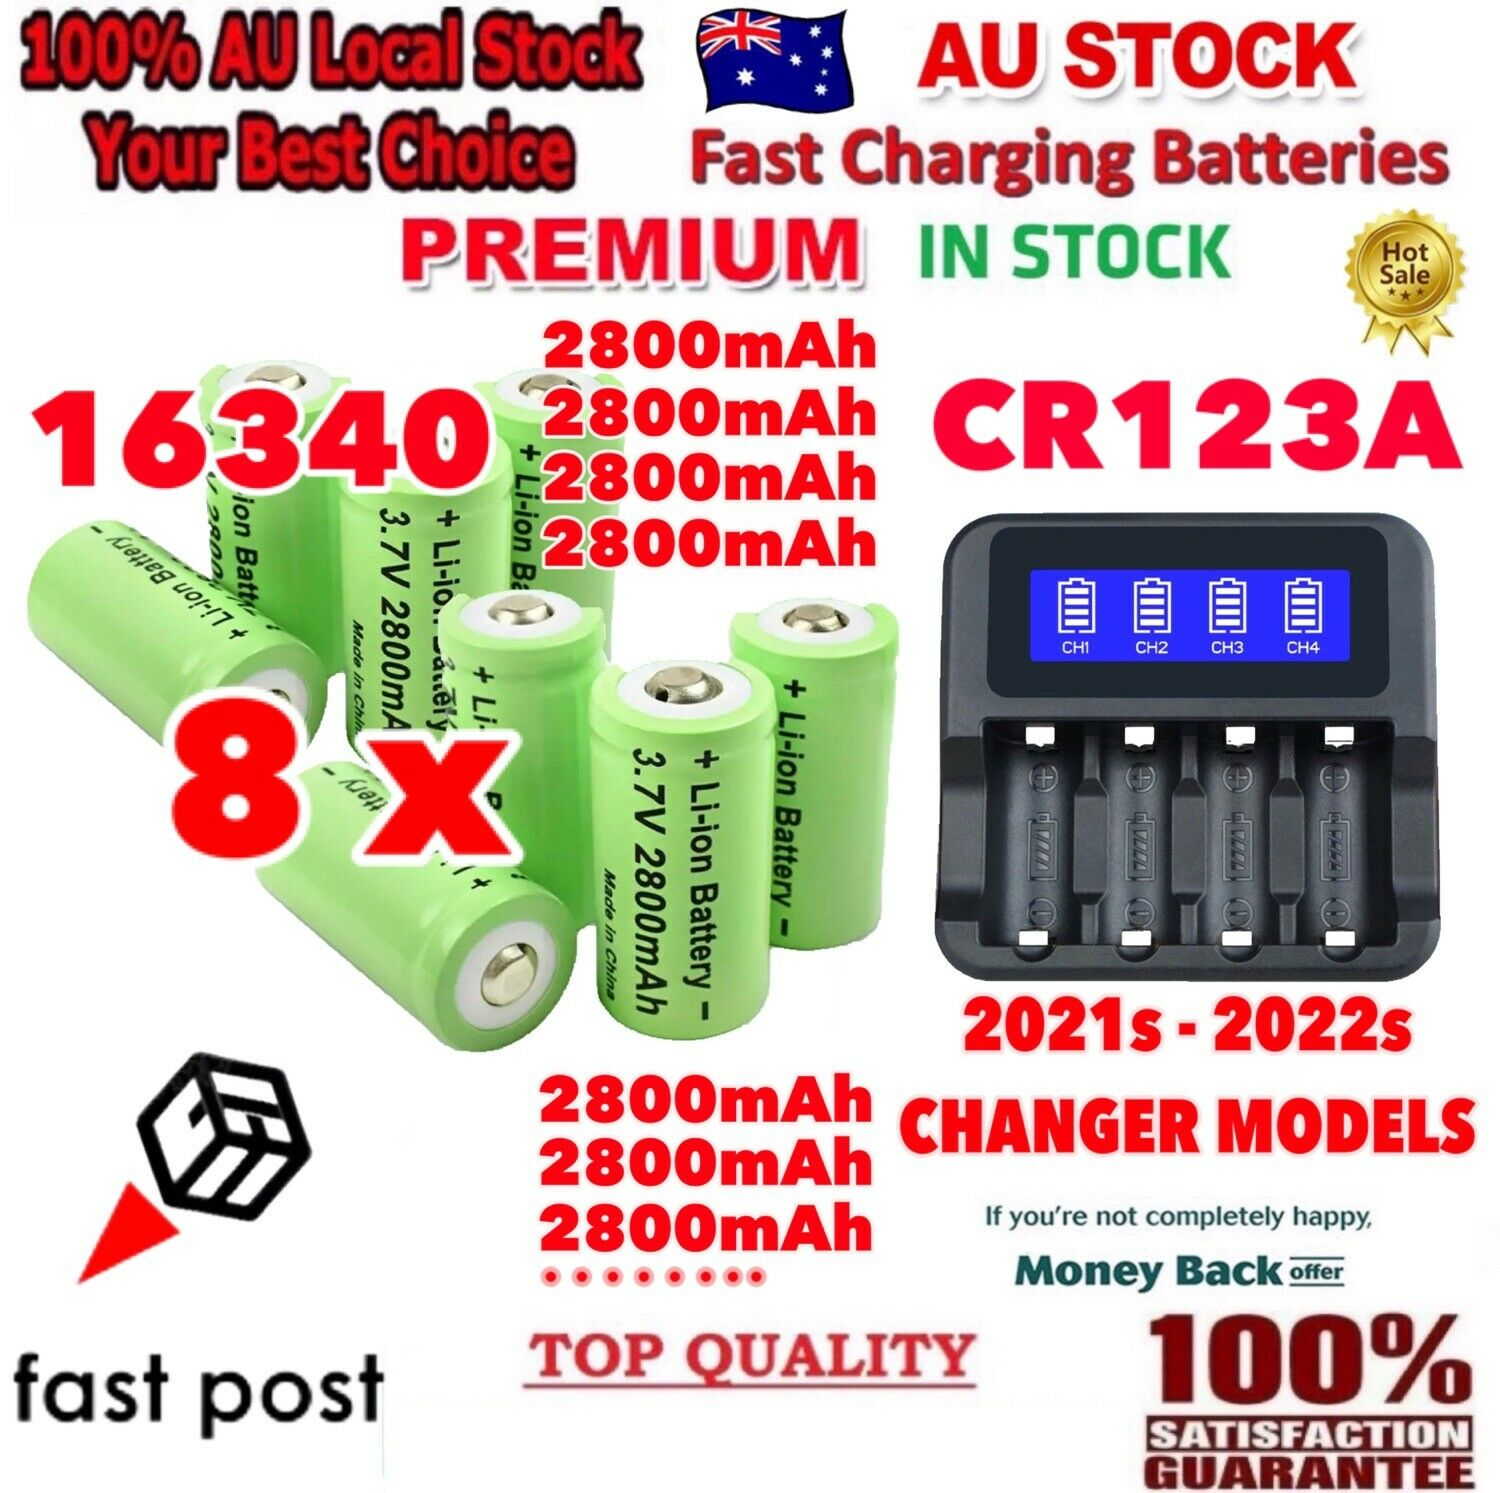 8x 2800mAh 16340 CR123A Rechargeable Battery & USB Charger for Arlo Camera